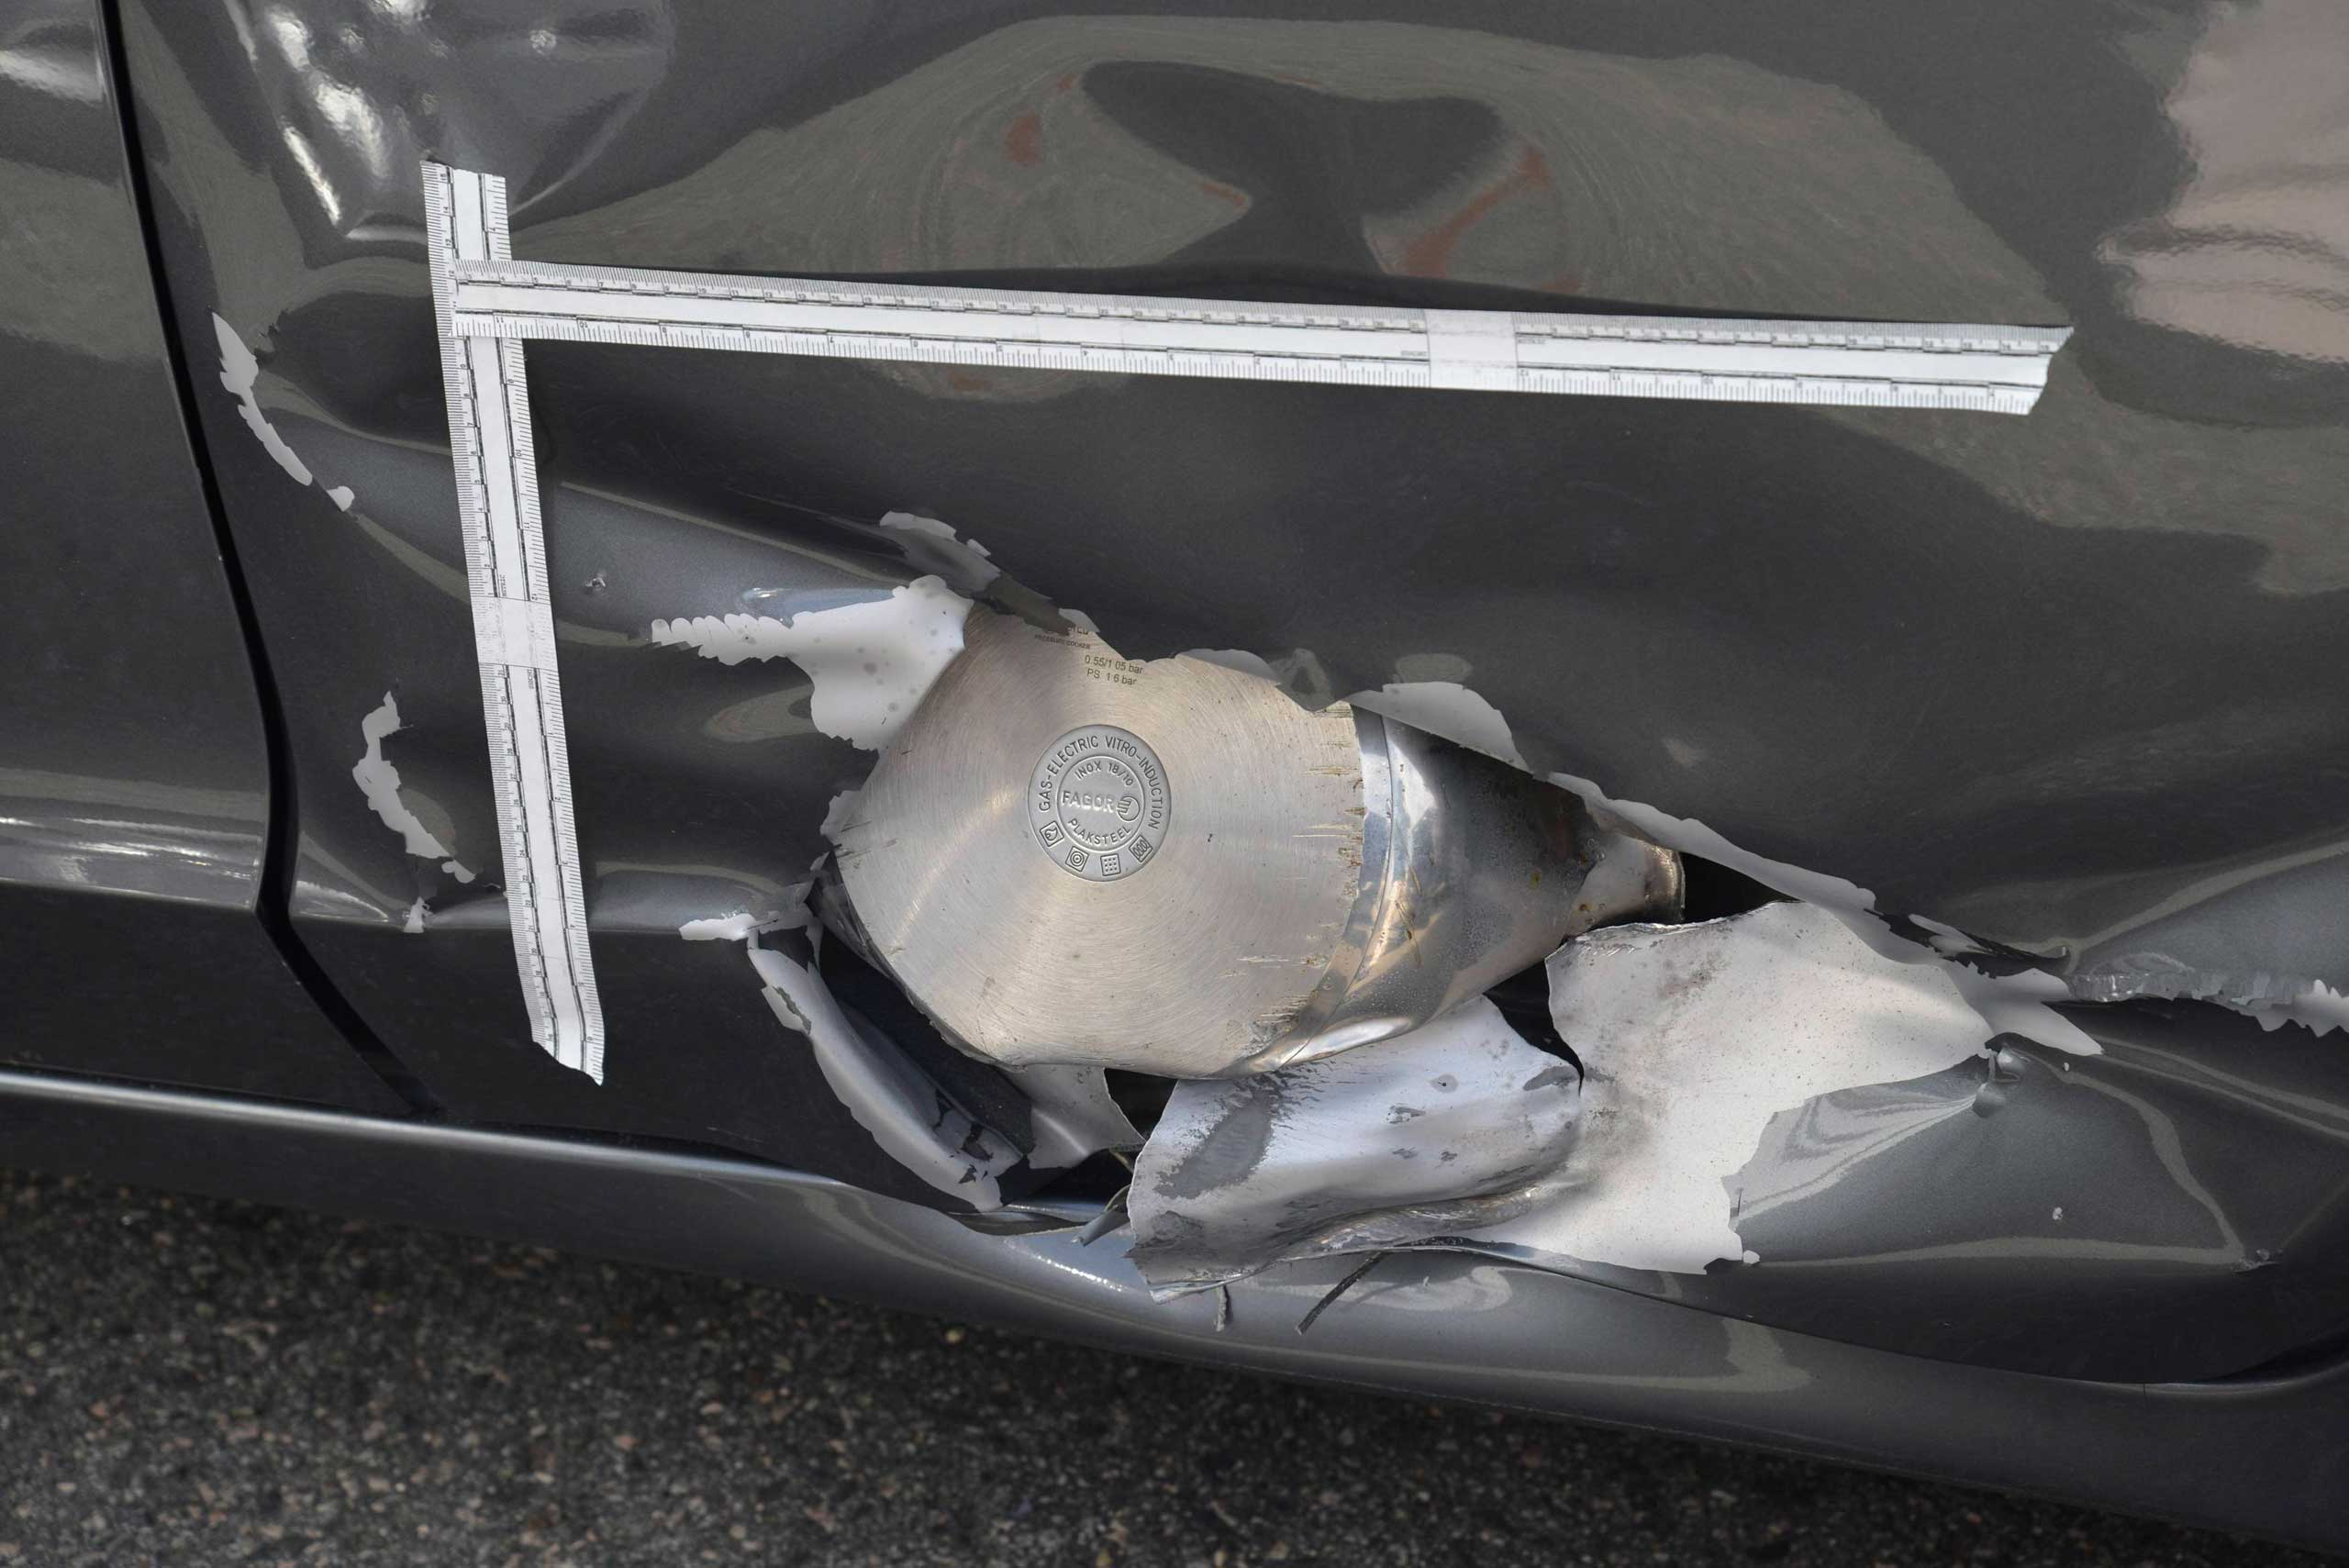 A large fragment of a homemade pressure-cooker bomb that accused Boston Marathon bomber Dzhokhar Tsarnaev is charged with throwing at police officers during a gunfight in Watertown, Mass. on April 19, 2015, is seen embedded in the side of a Honda Civic that was parked near the site of the disturbance.